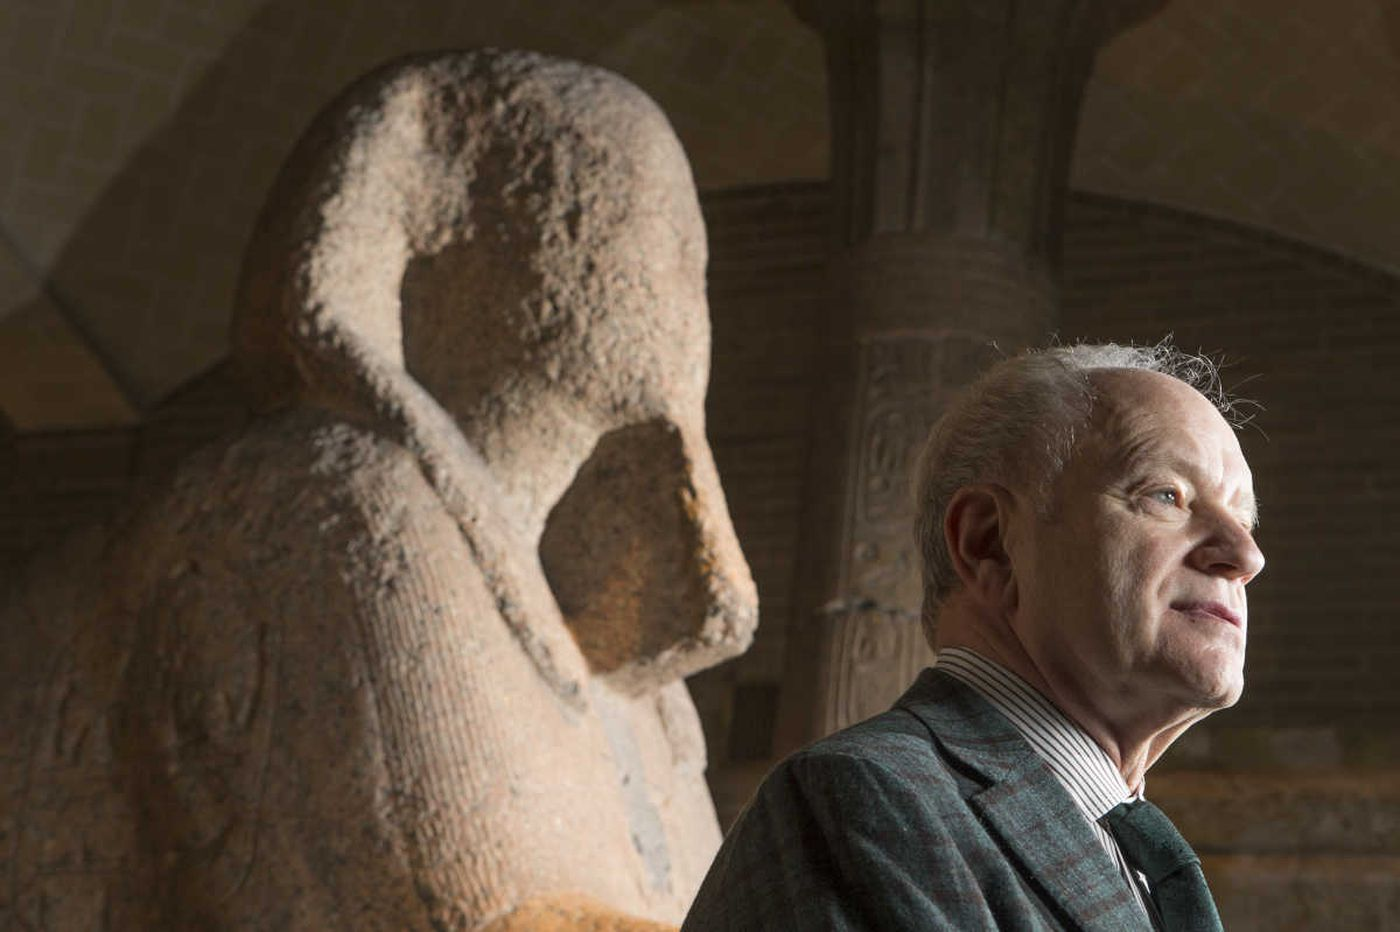 More than 20K people take Penn online course on ancient Egypt